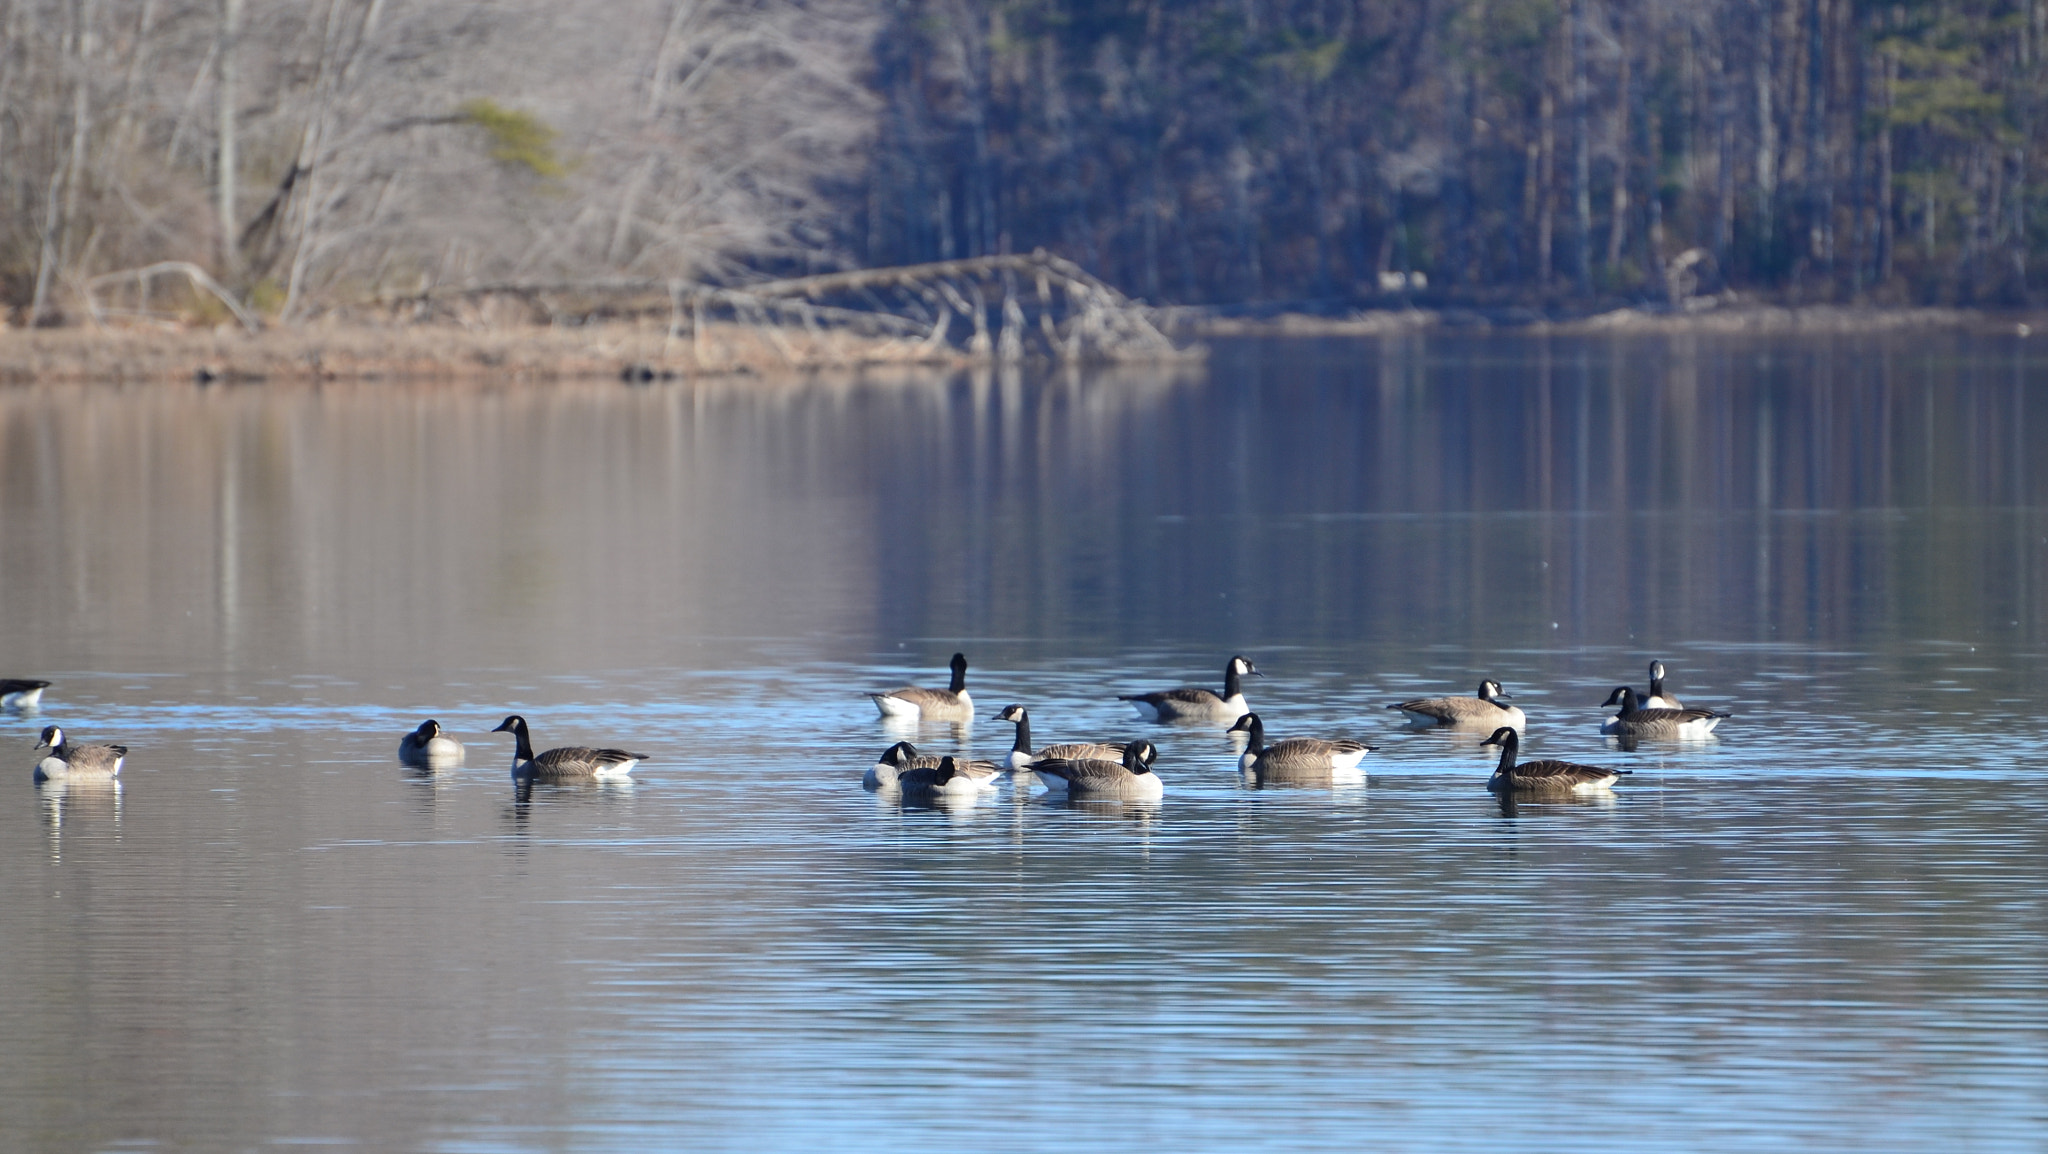 Photograph Geese at Burke Lake  by Ioana Colfescu on 500px